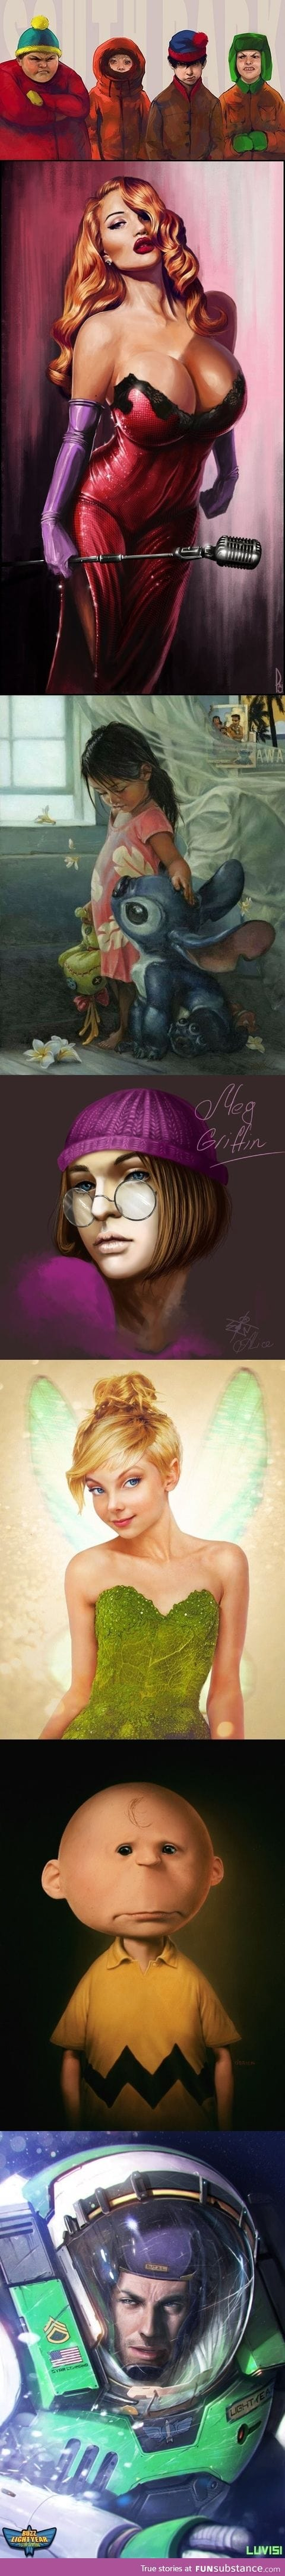 Amazing drawings of cartoon characters